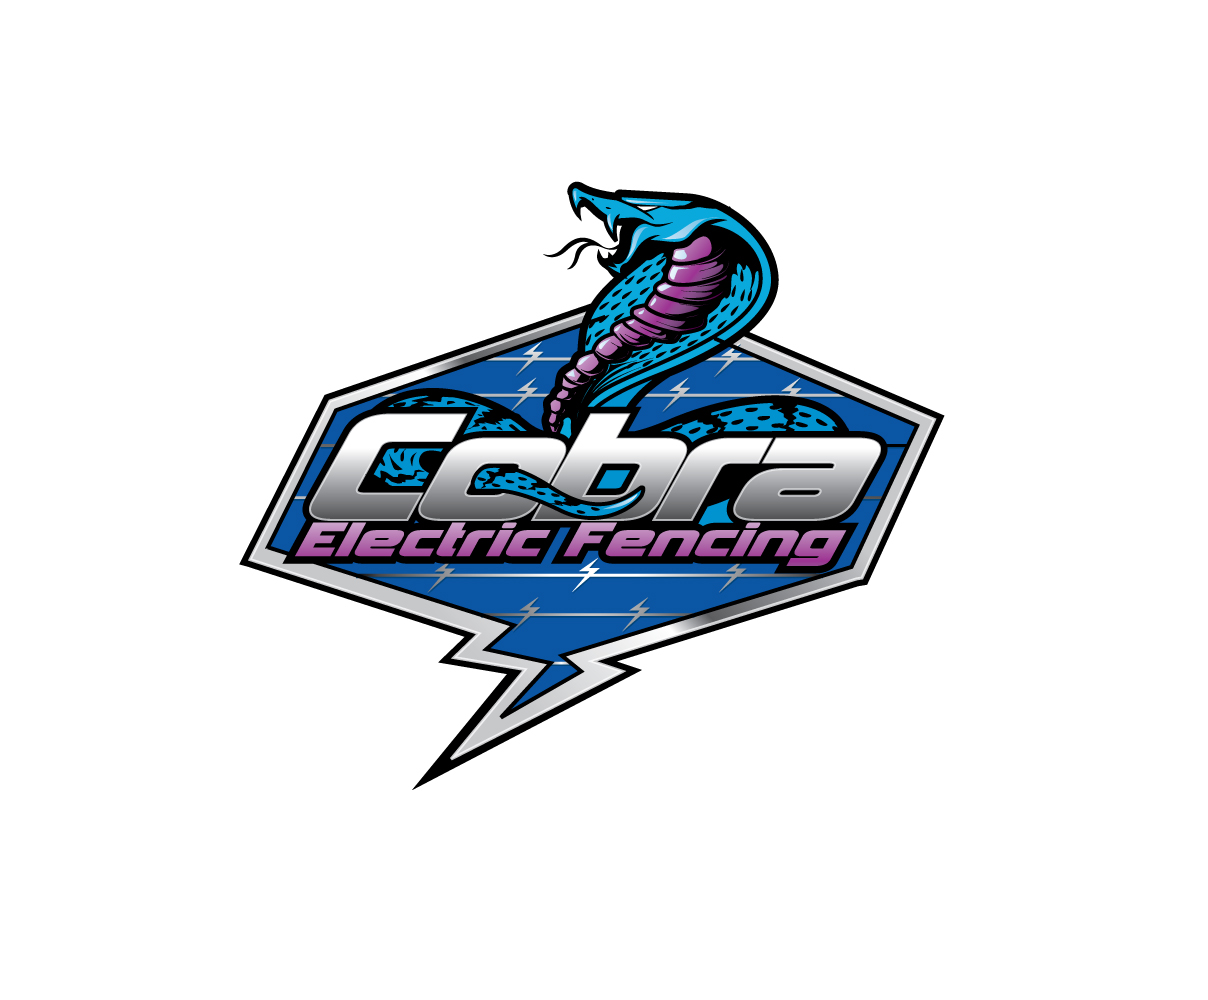 Cobra Electric Fencing Logo by Graphicsexpert